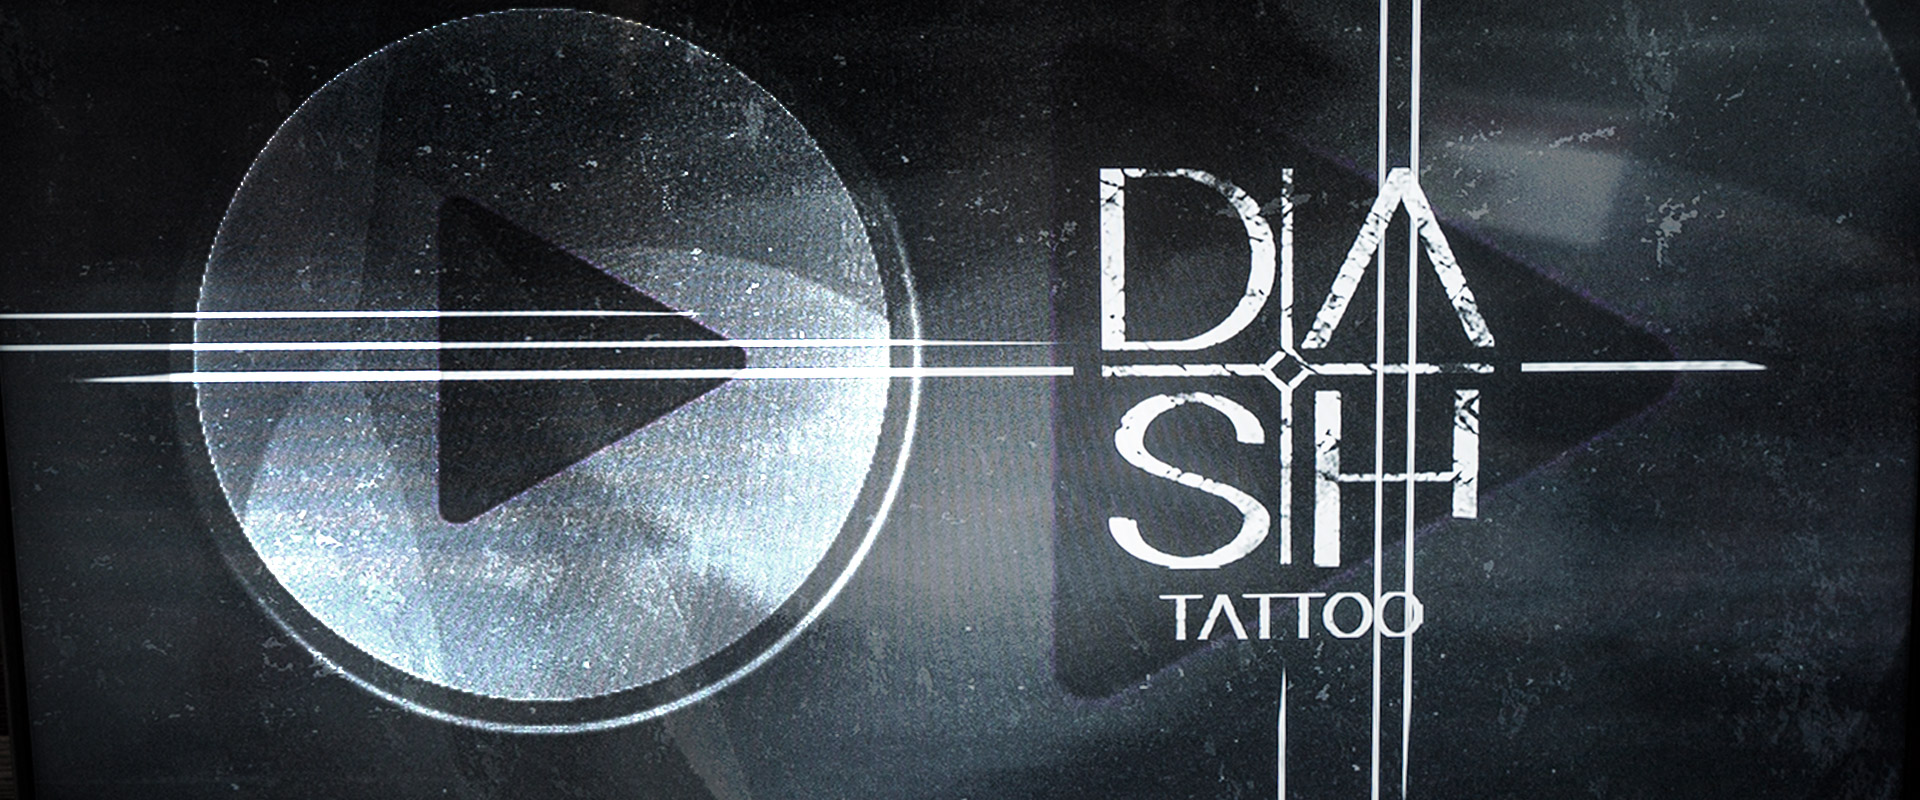 Press PLay DASH Videoscreen Tattoo Timelapse